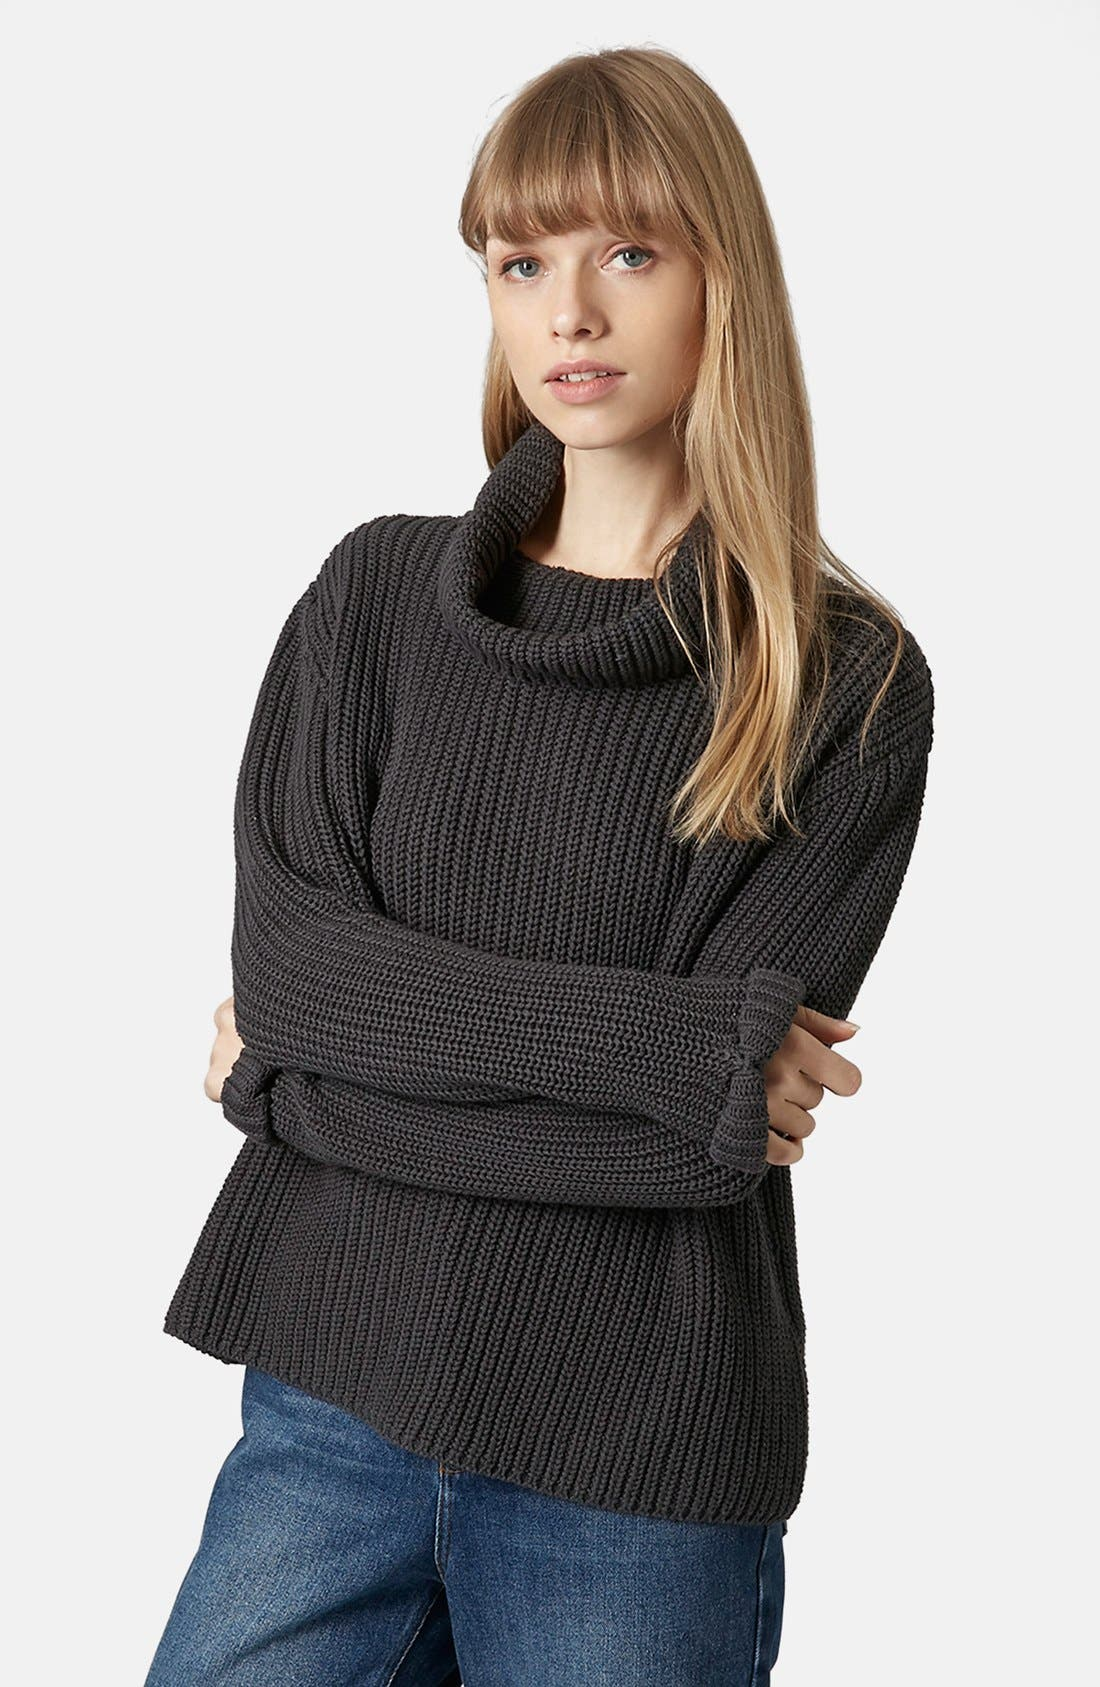 TOPSHOP BOUTIQUE,                             Roll Neck Fisherman Sweater,                             Main thumbnail 1, color,                             021